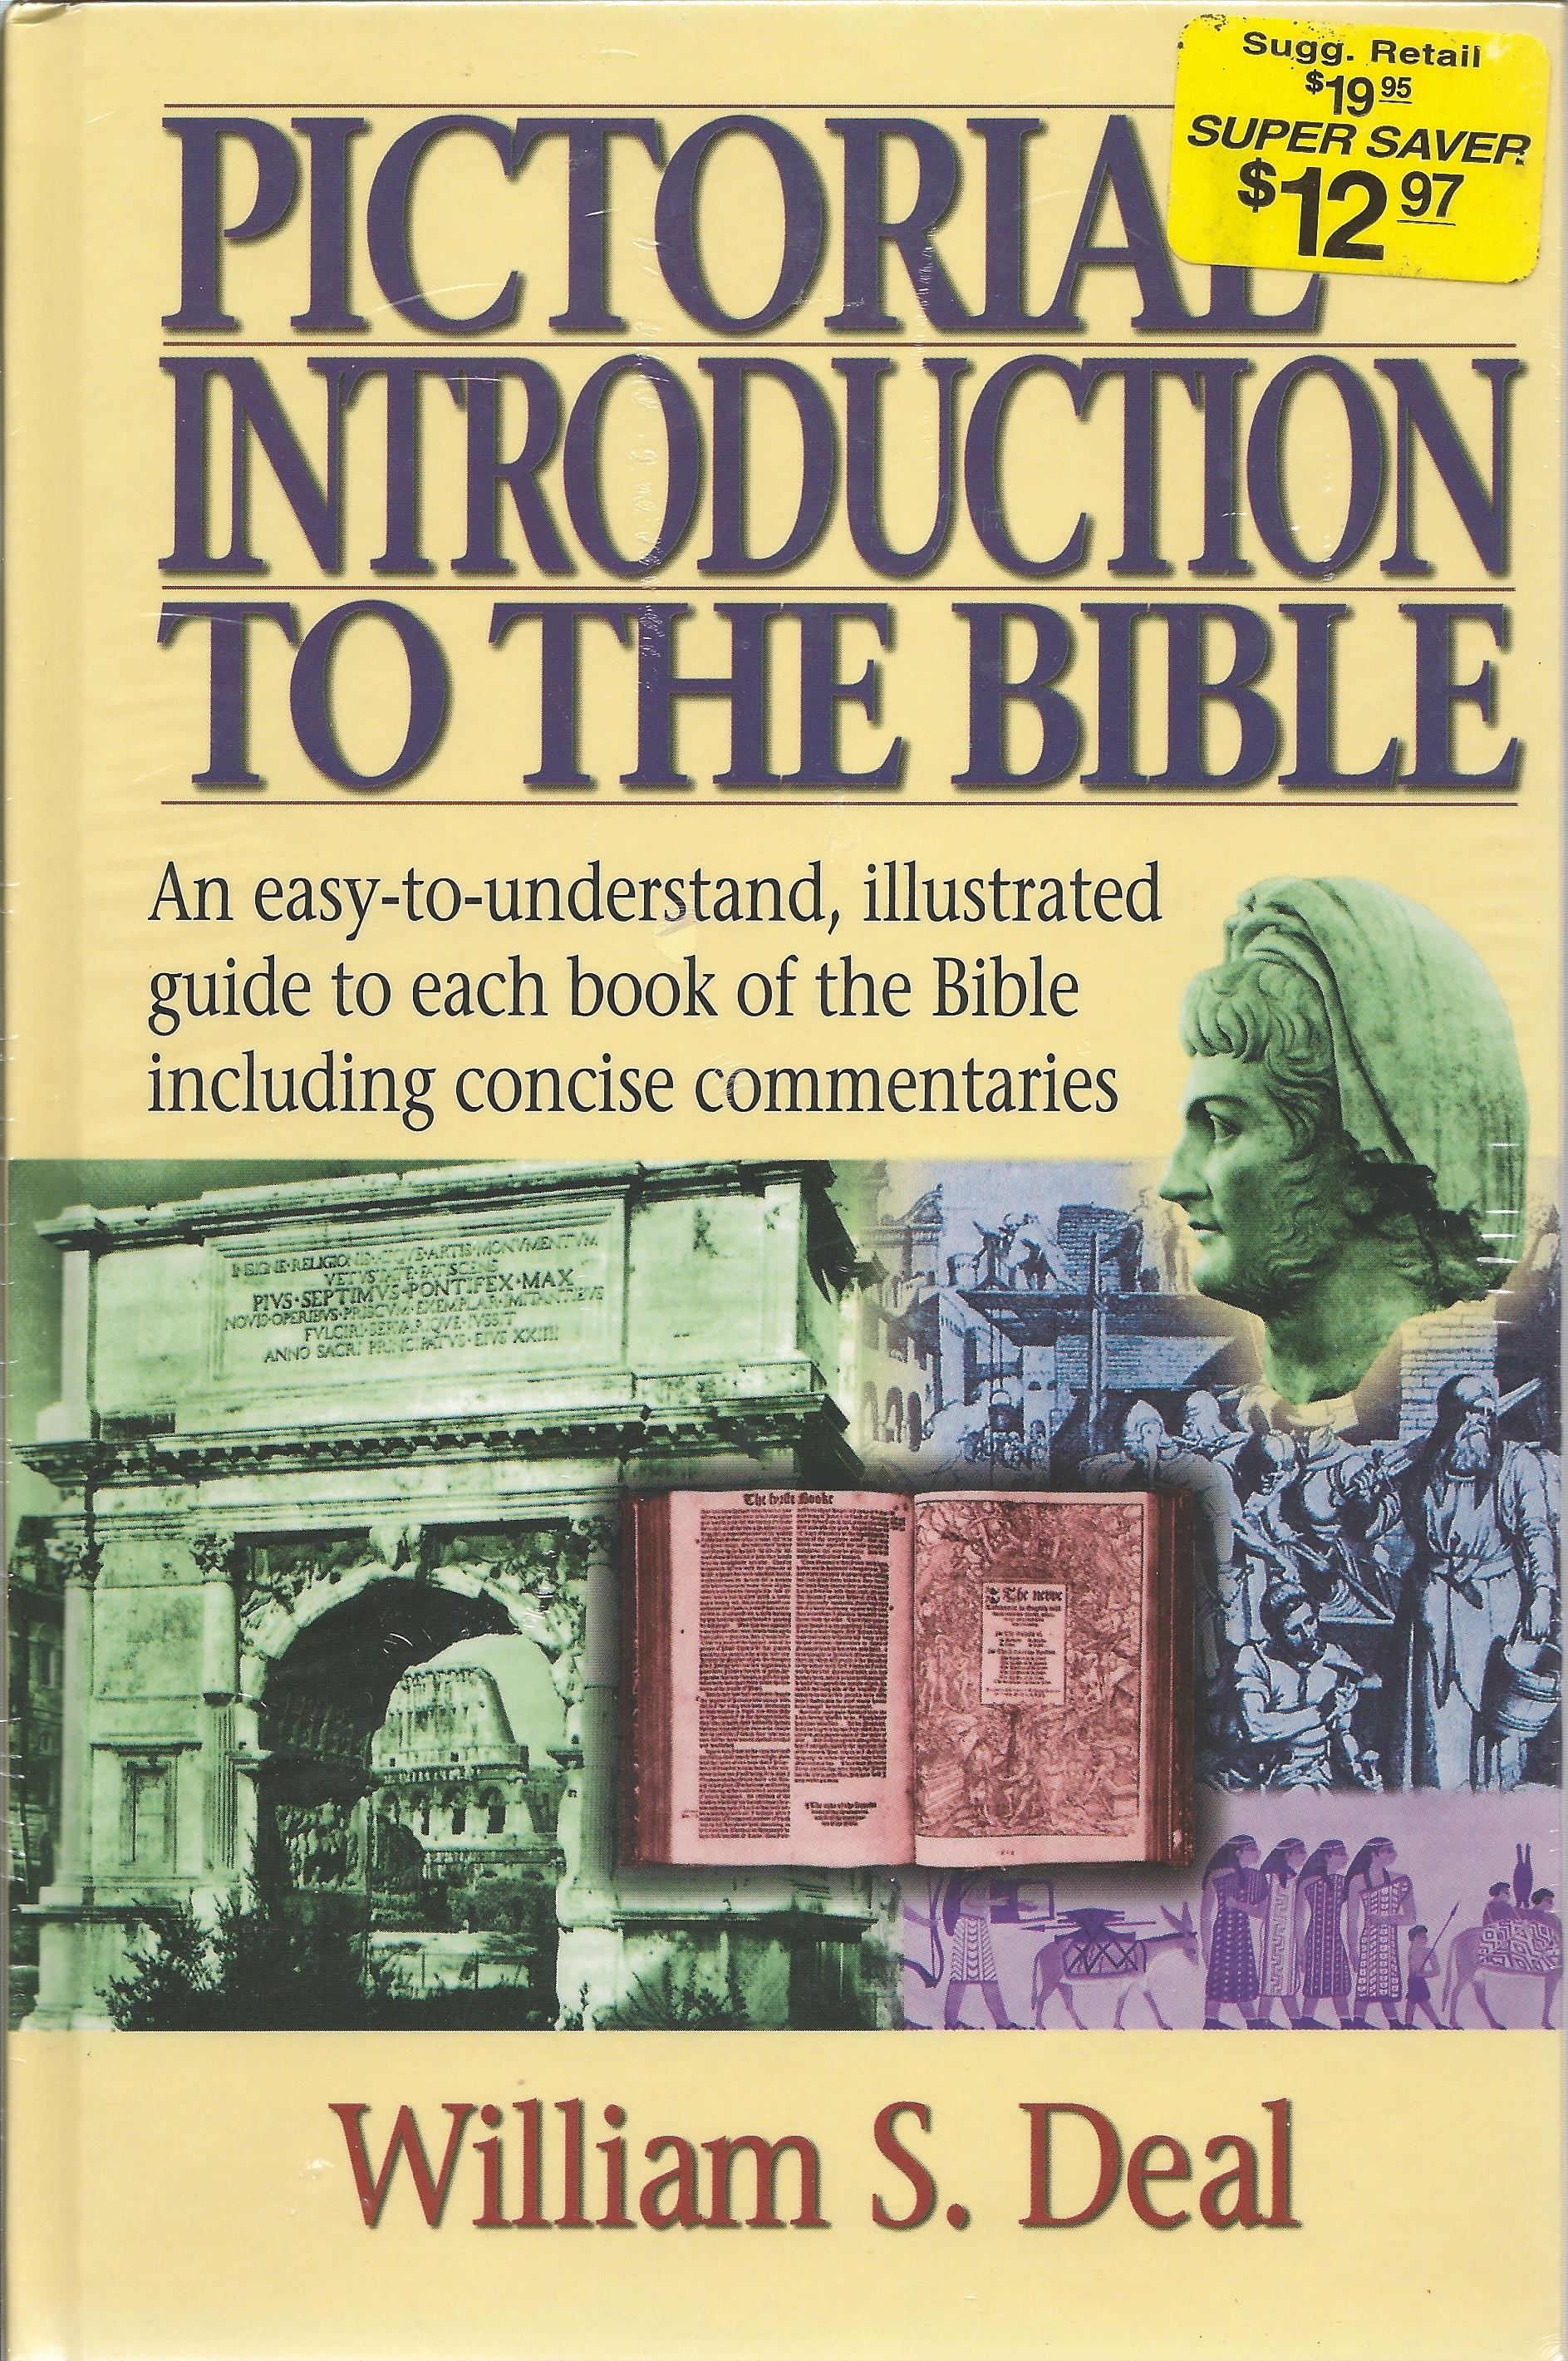 PICTORIAL INTRODUCTION TO THE BIBLE WIlliam Deal